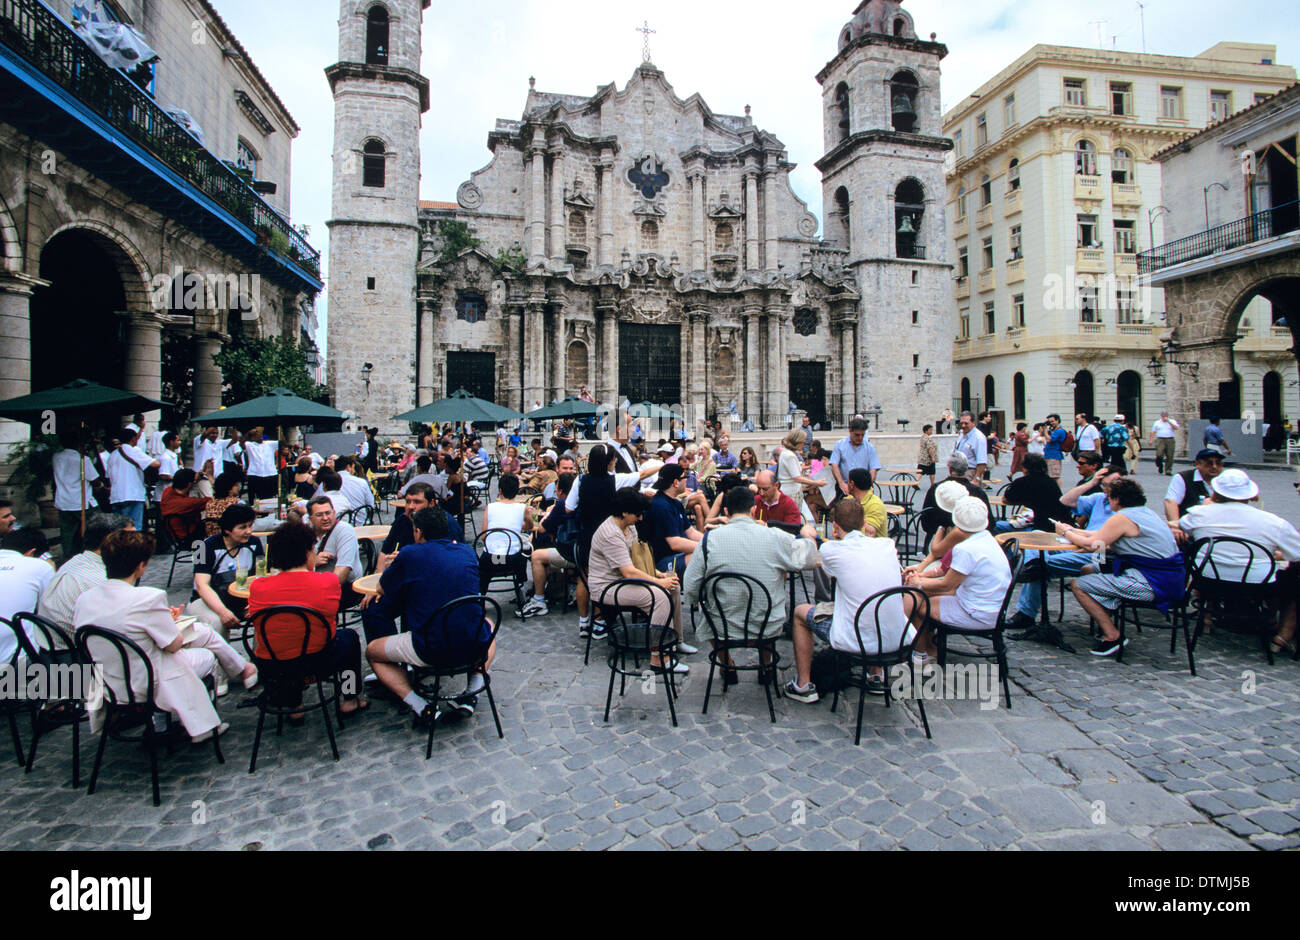 El Patio Restaurant In Plaza De La Catedral Is The Most Popular Gathering  Spot In Habana Vieja, The Old City, Cuba